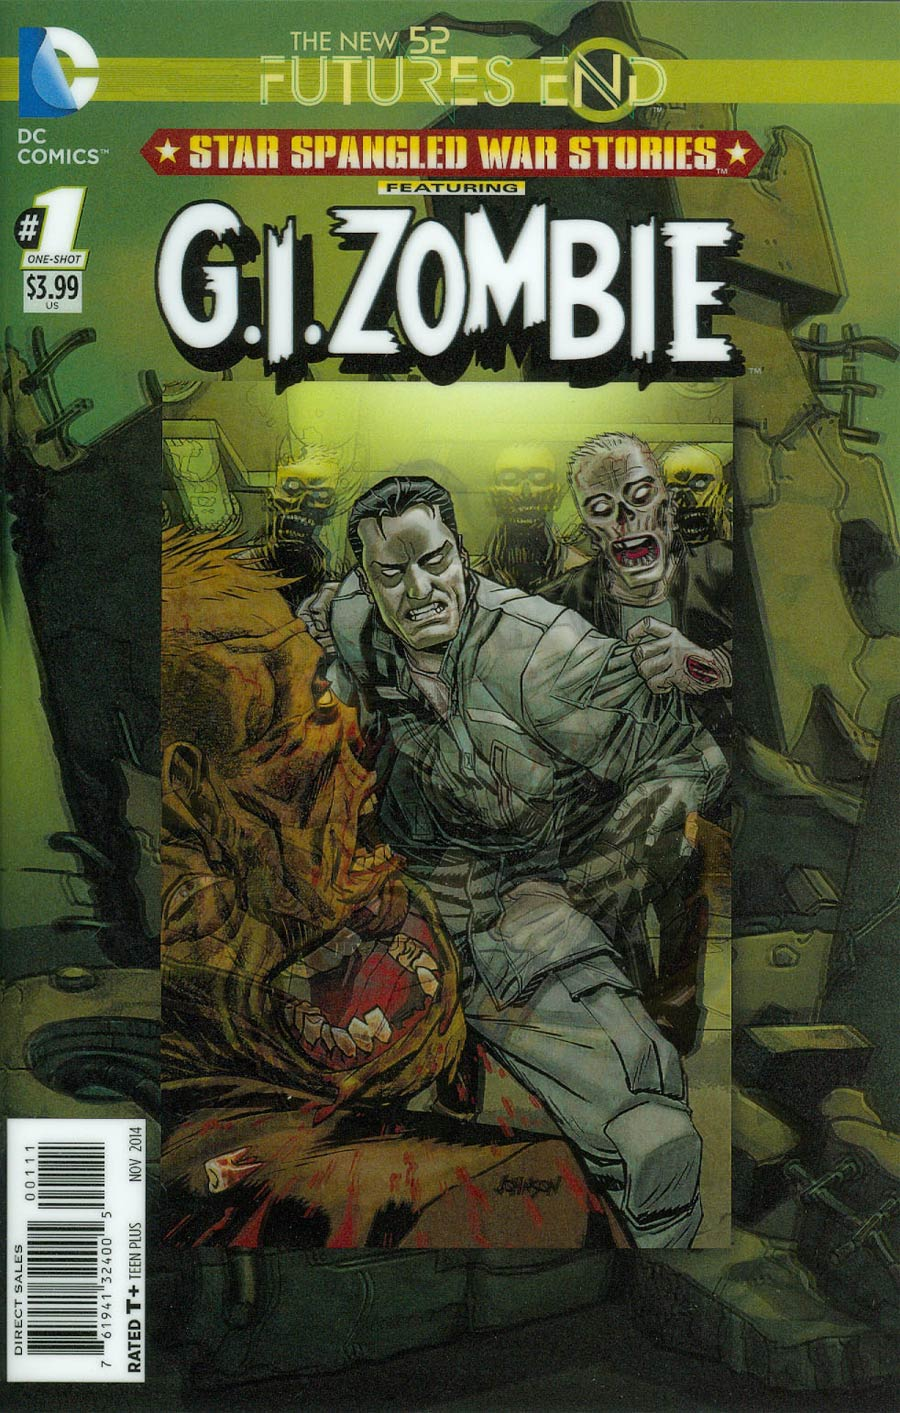 Star-Spangled War Stories Featuring GI Zombie Futures End #1 Cover A 3D Motion Cover